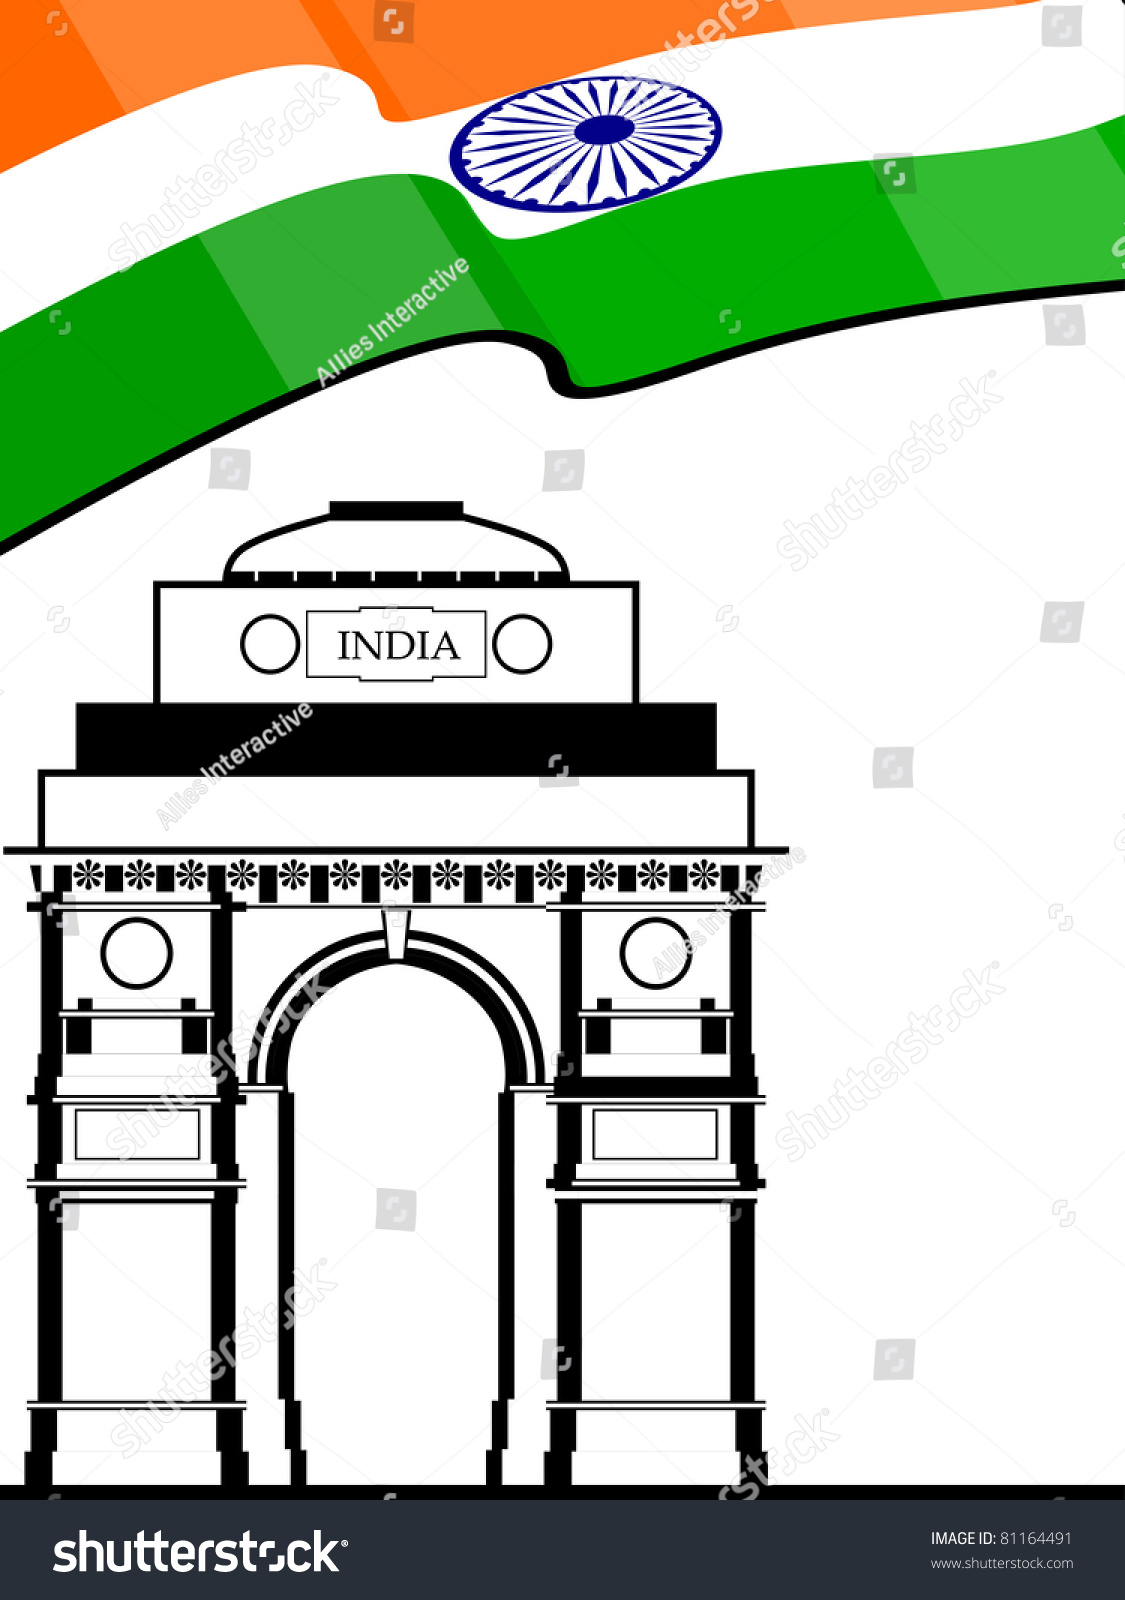 the background information of india How background verification process works in india march 4, 2017 in career advice by amit chand companies conduct background verification checks to get information about your past work history, criminal records, educational credentials, and residential proof.